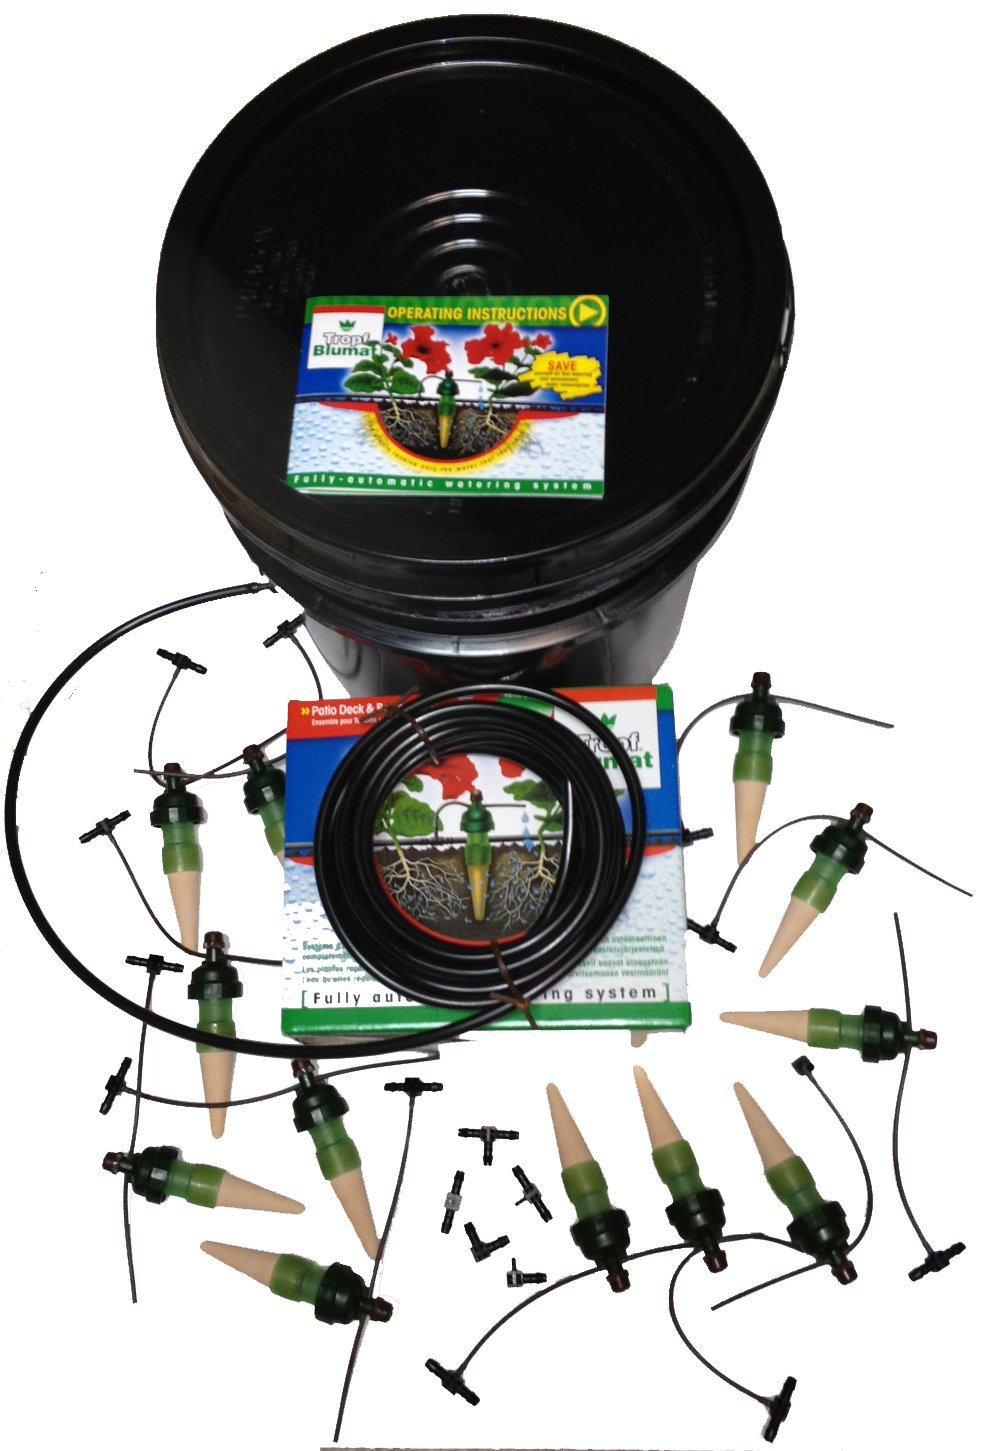 Blumat Plant Spikes Kit, Medium w/ 5 Gallon Reservoir, Made in Austria, 12 Stakes for Automatic or Vacation Watering by Blumat